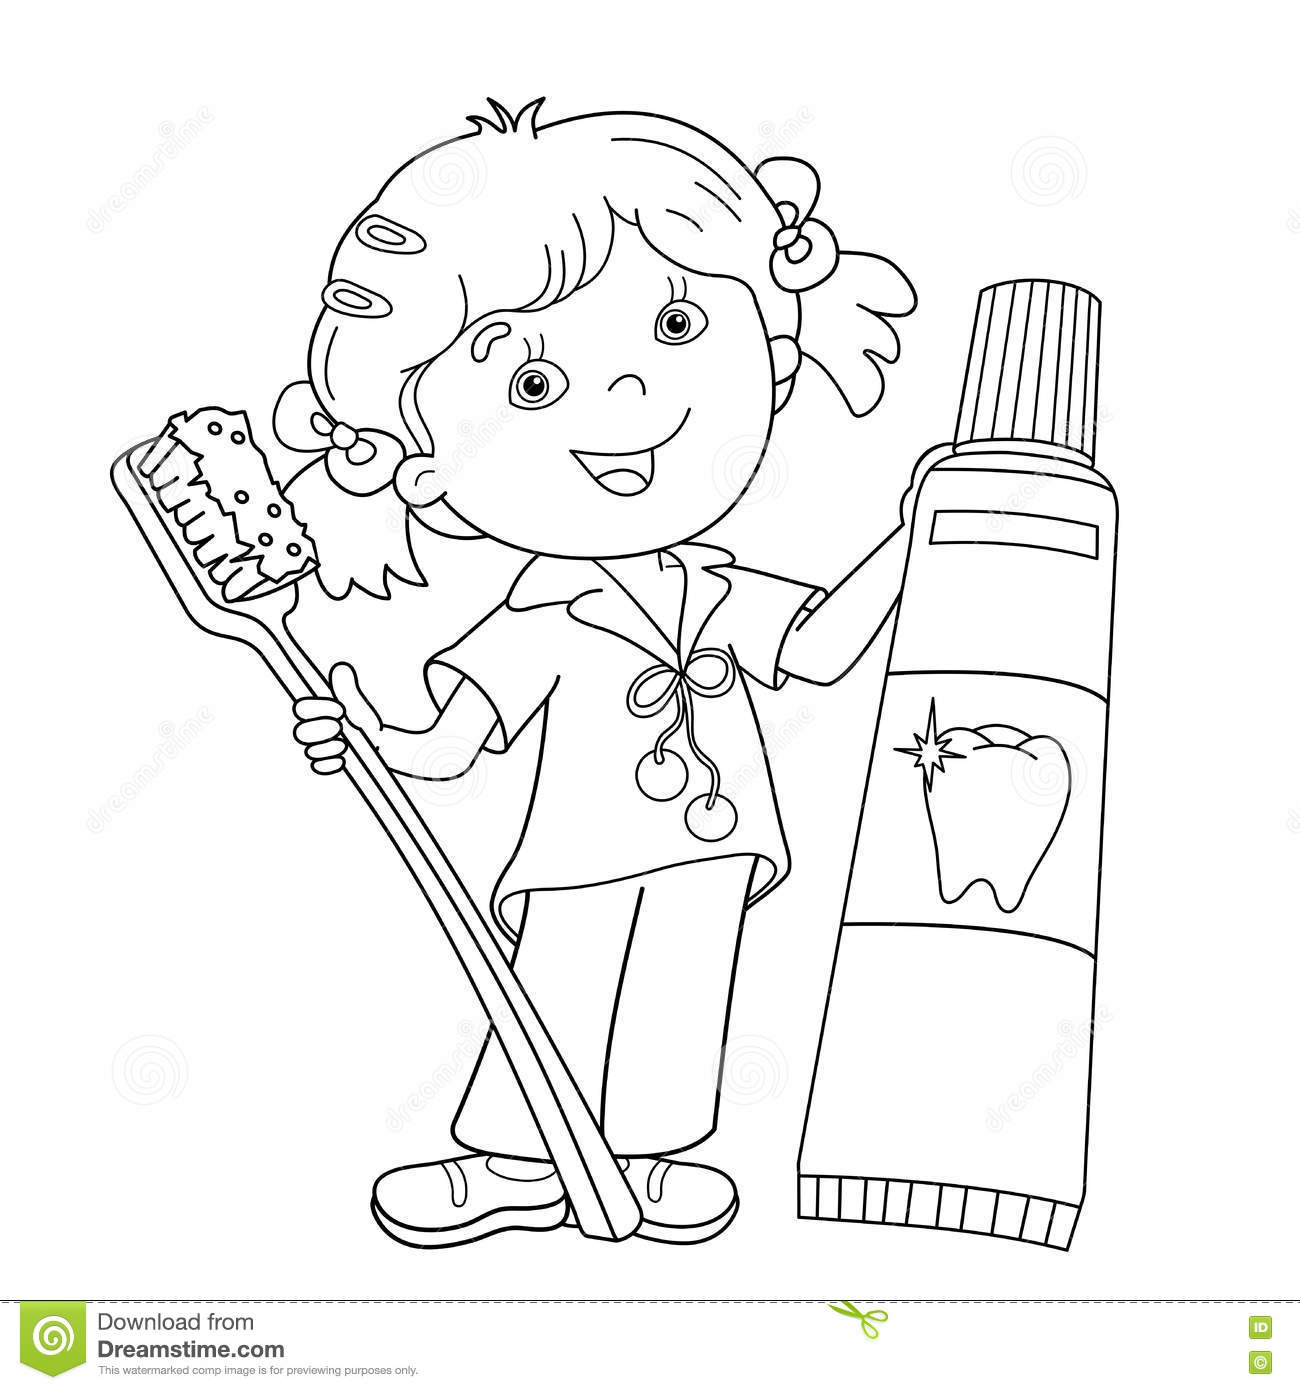 Coloring Page Outline Of Cartoon Girl With Toothbrush And Toothpaste Stock Vector